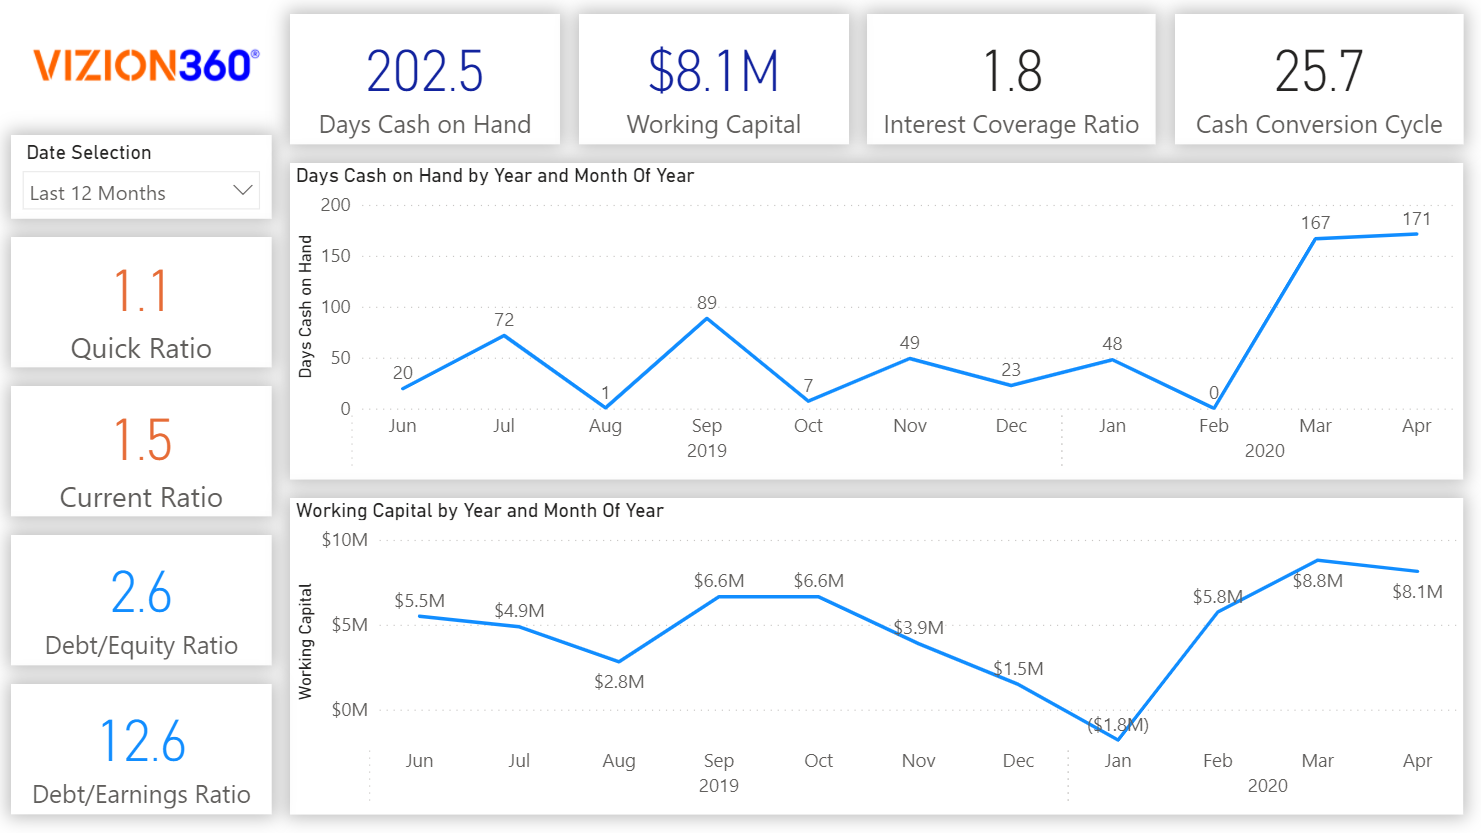 Cash Management Report and Analysis on Vizion360 Impact Analytics Finance App